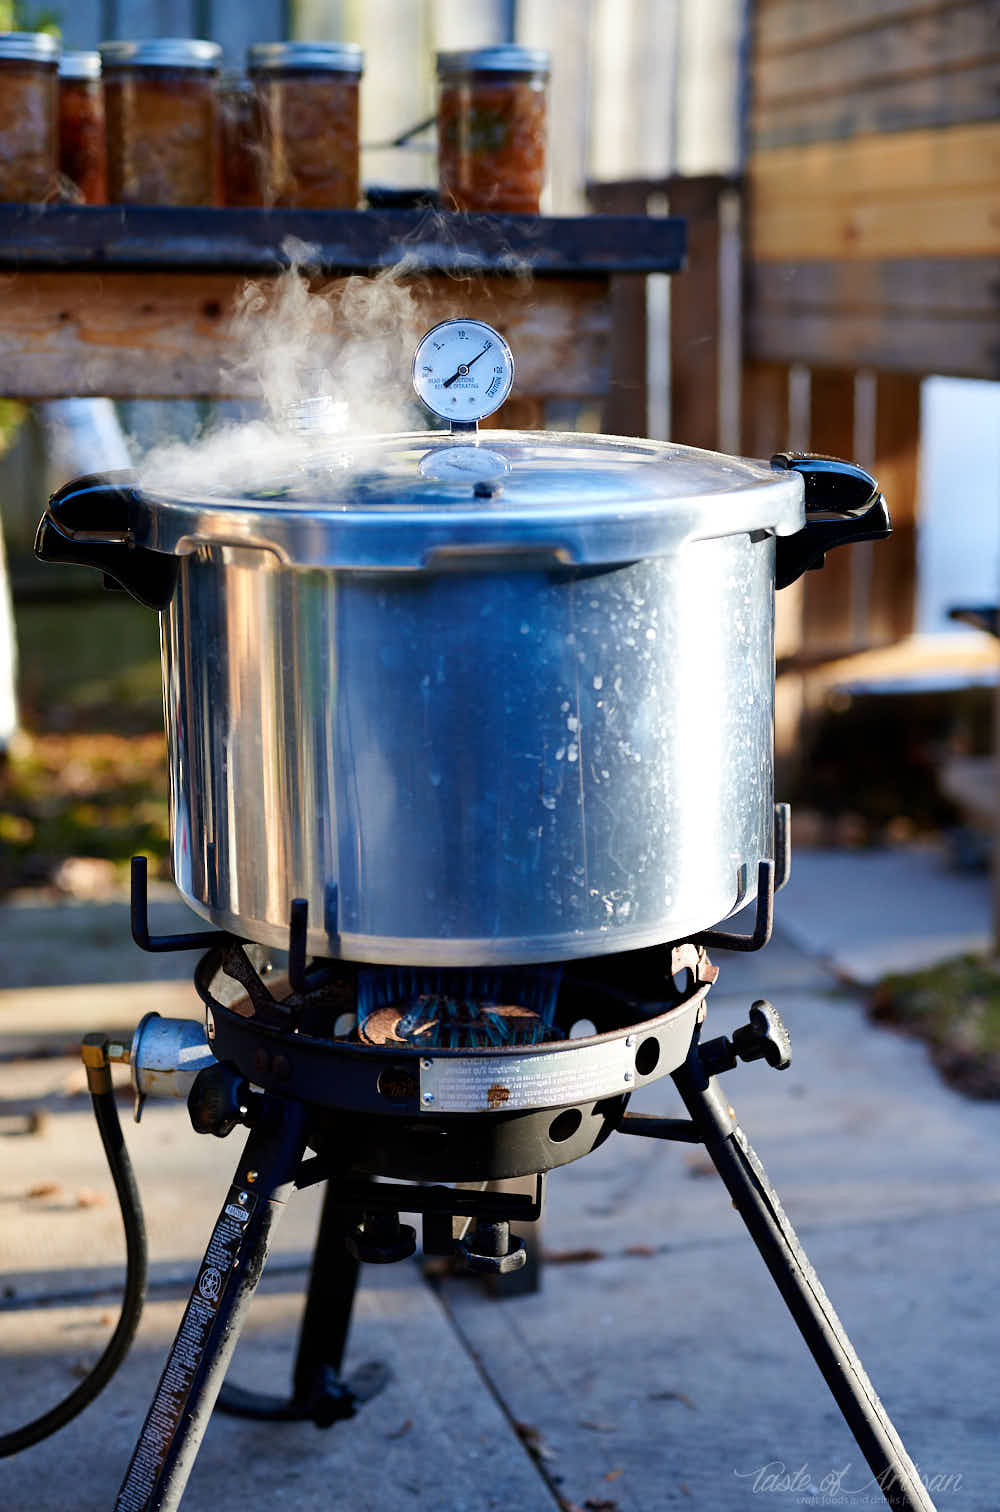 Steaming meat canner on gas burner.